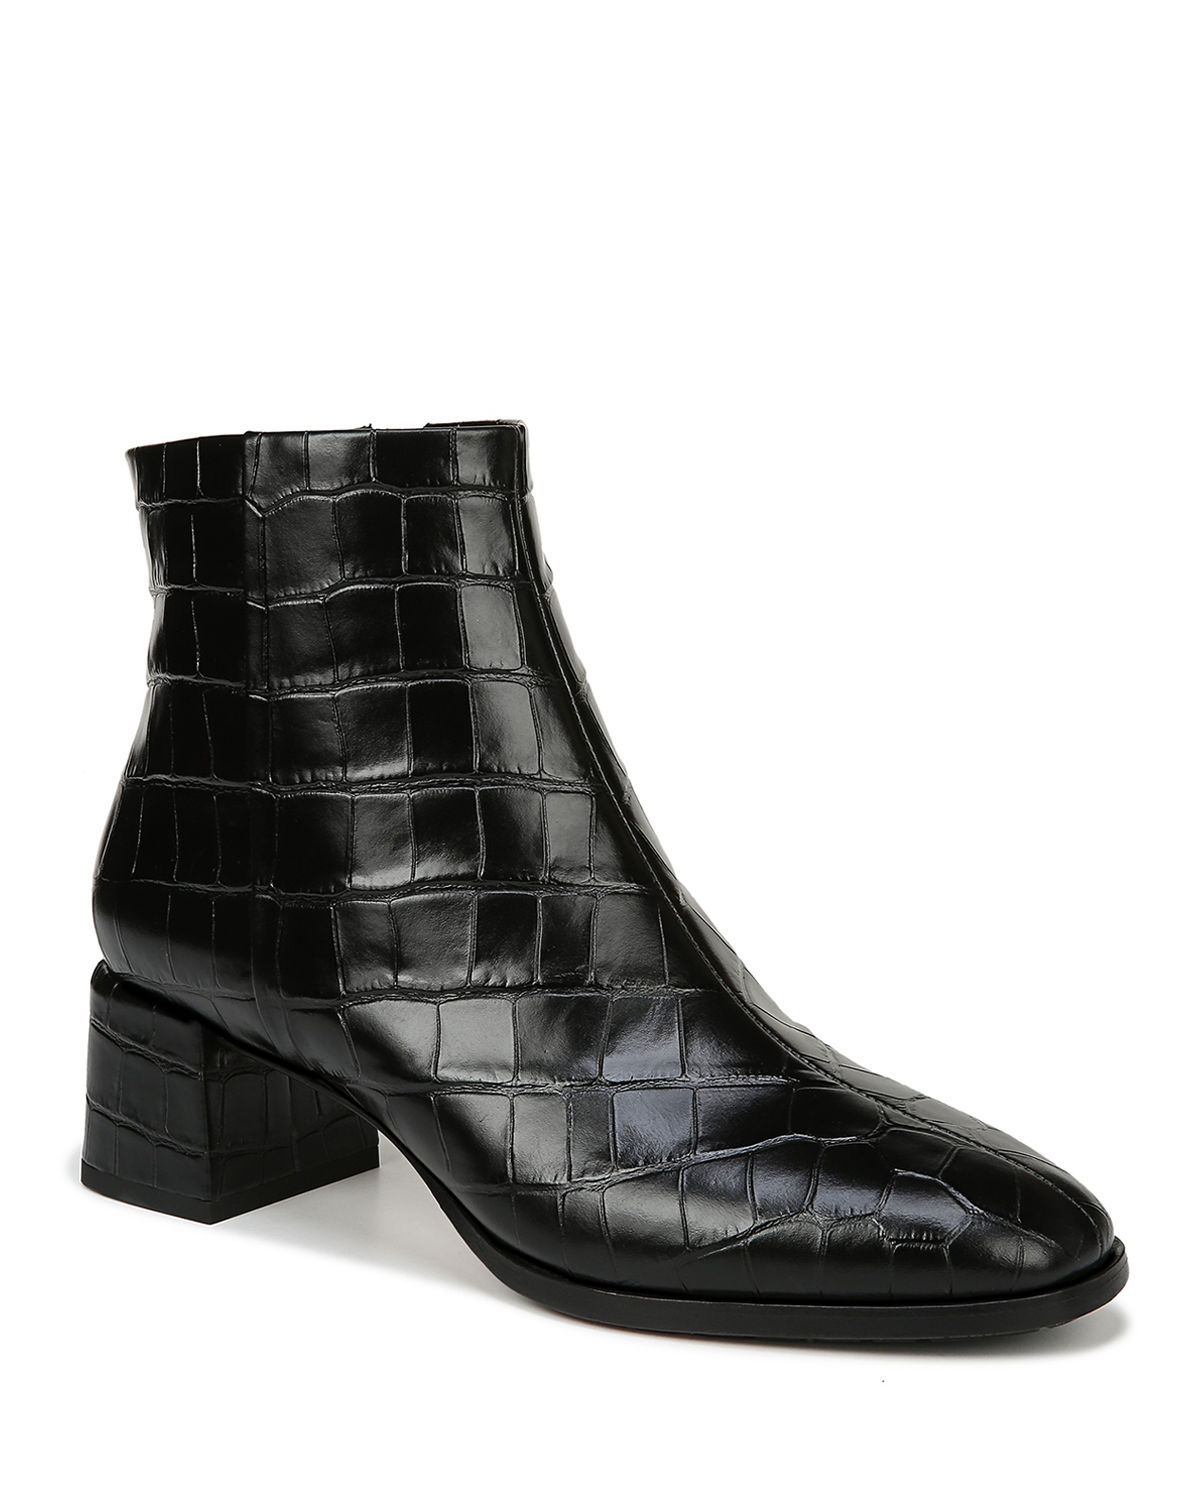 Via Spiga Boots SAHIRA MOCK CROC ZIP BOOTIES